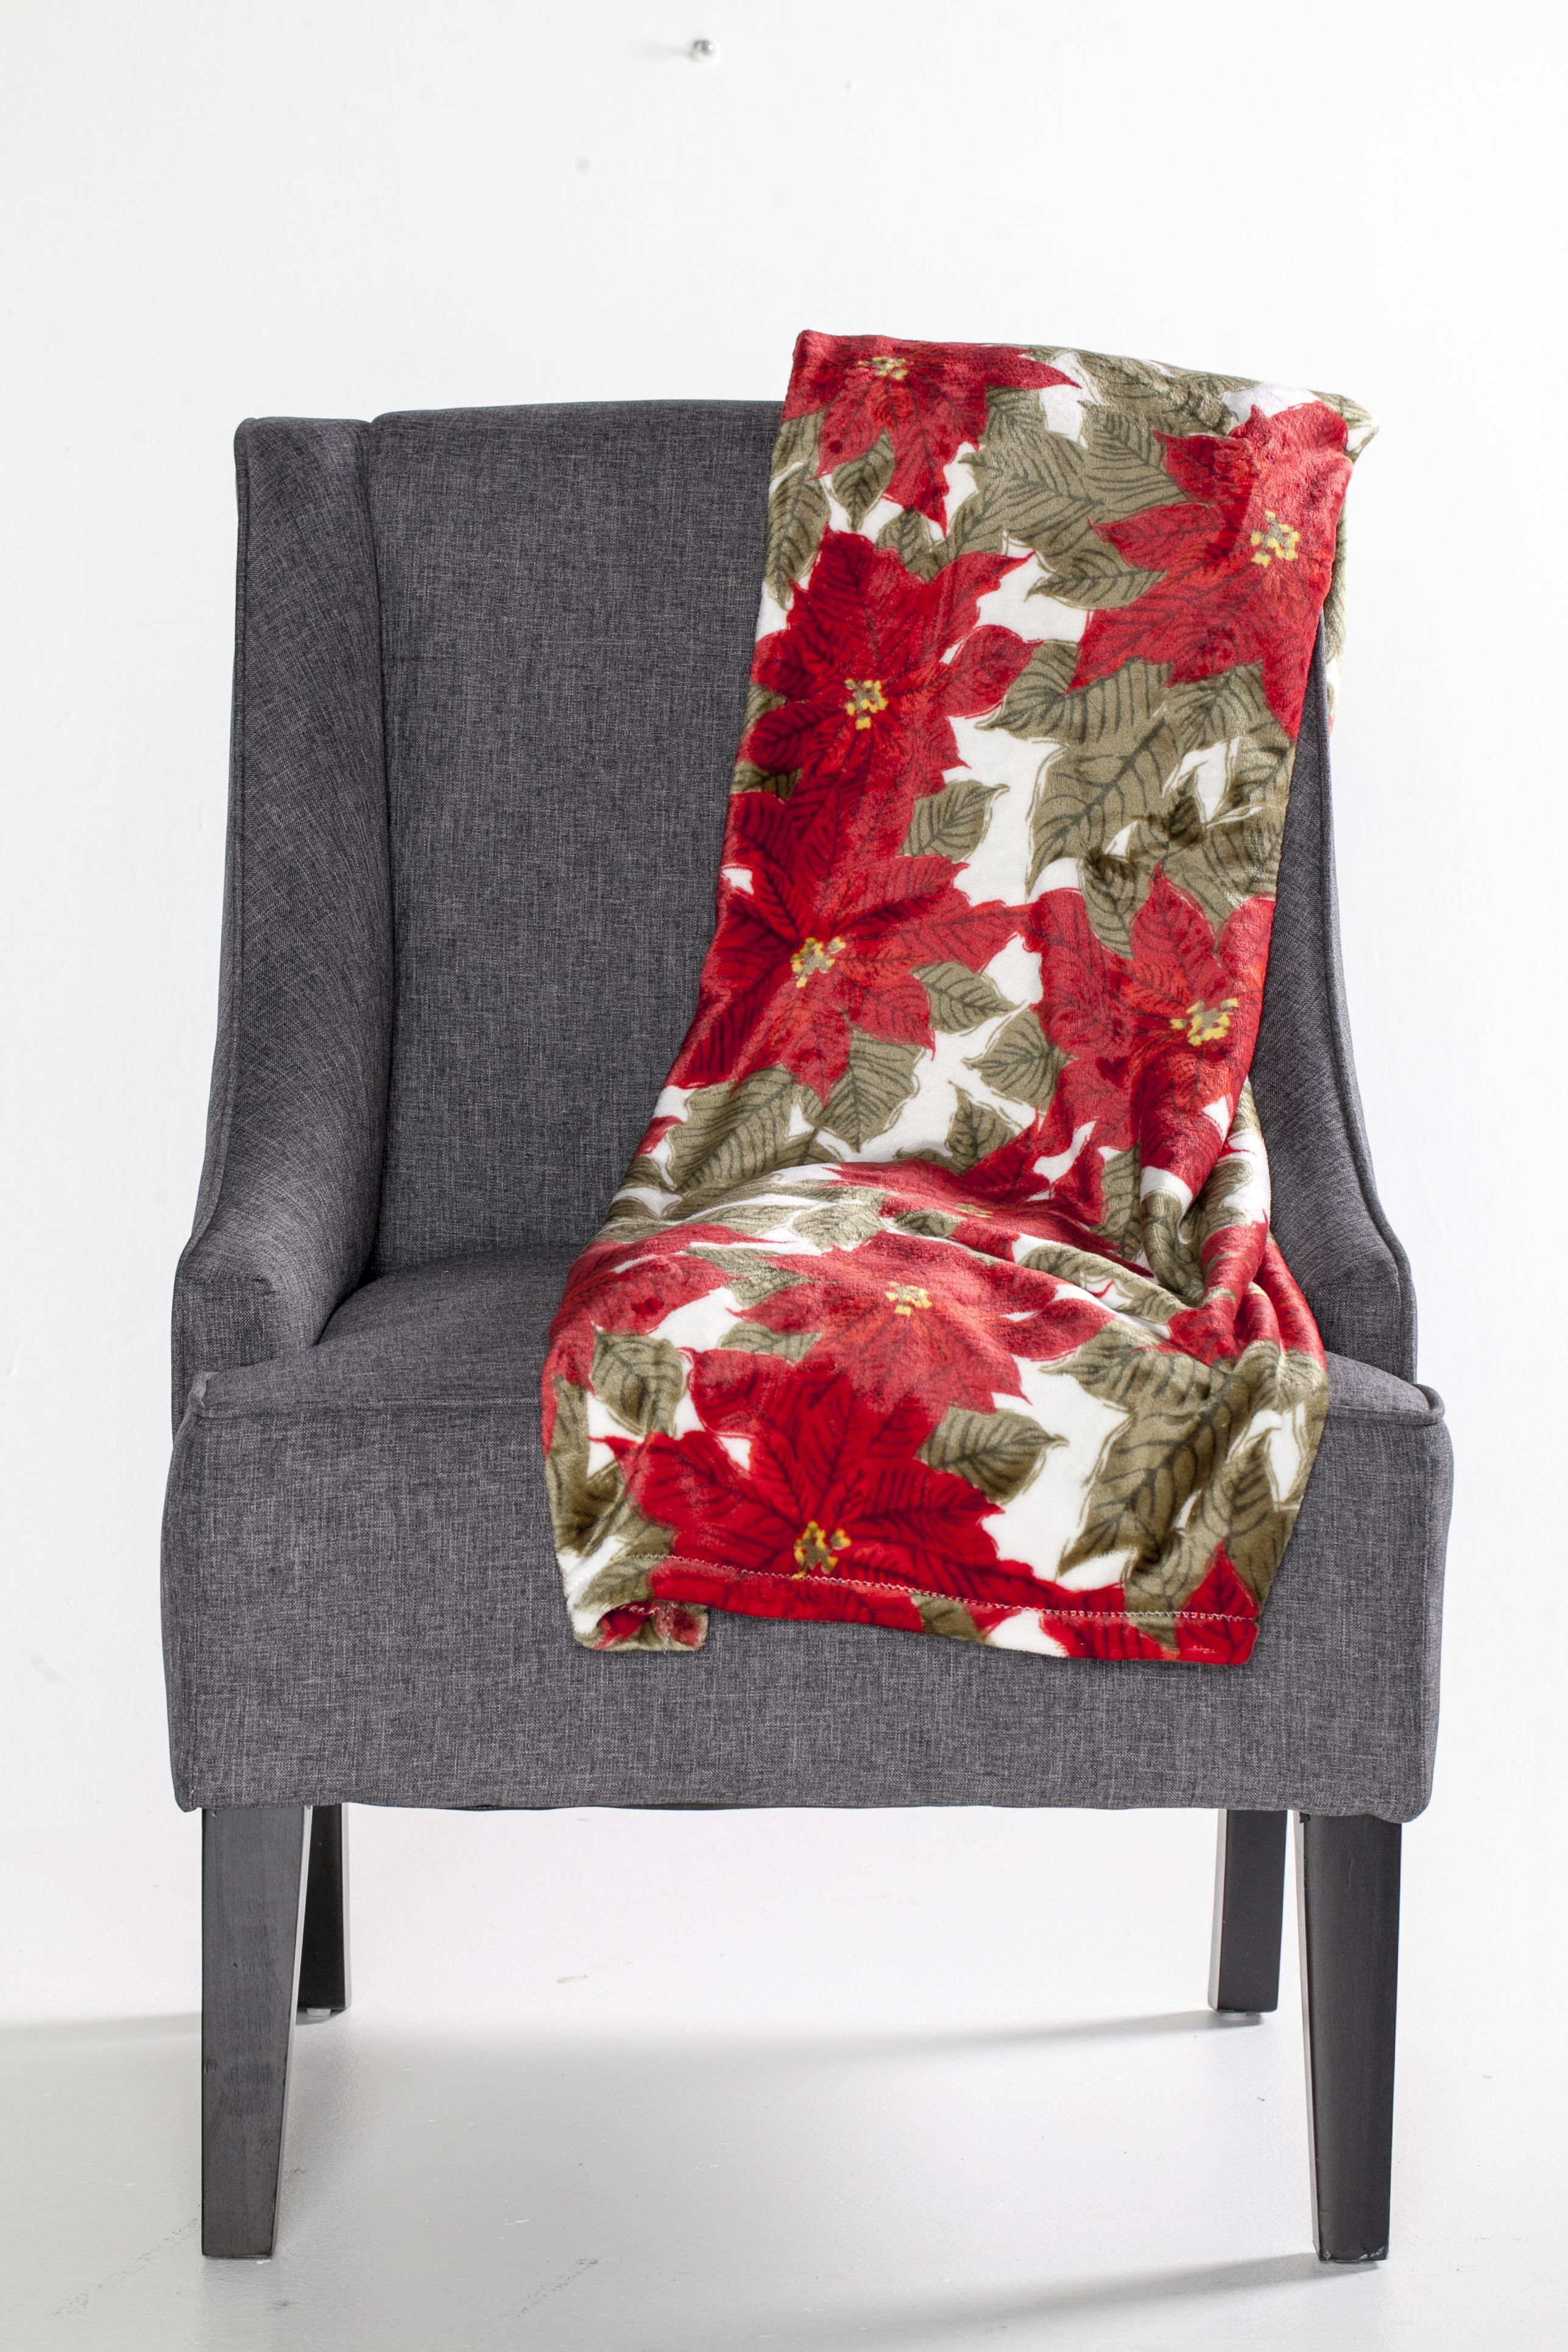 Wait for Santa this Christmas eve in a cozy chair and warm fy